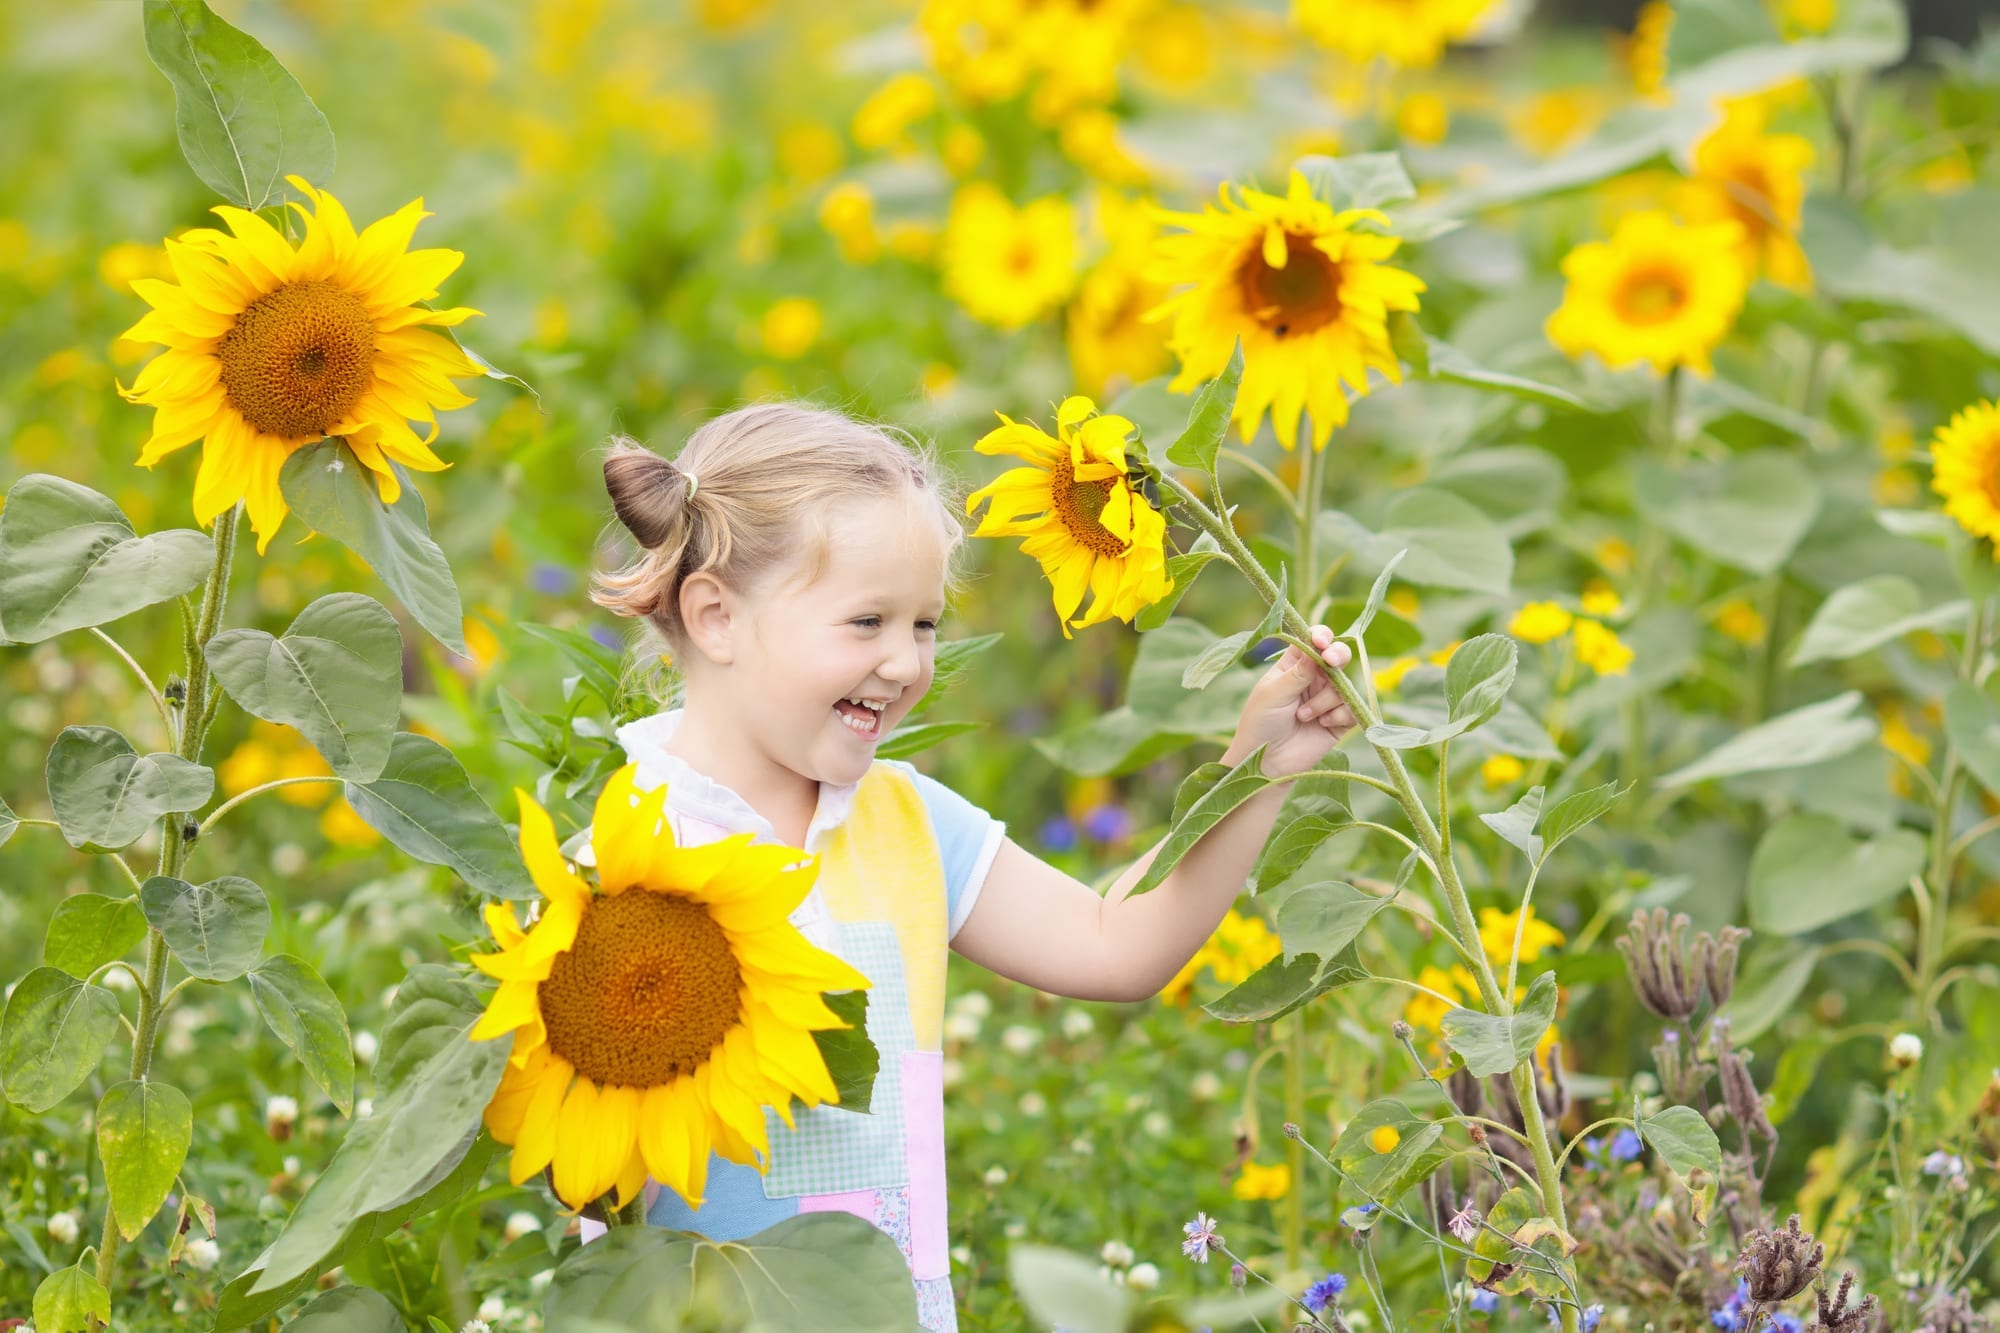 Little girl playing in the sunflowers